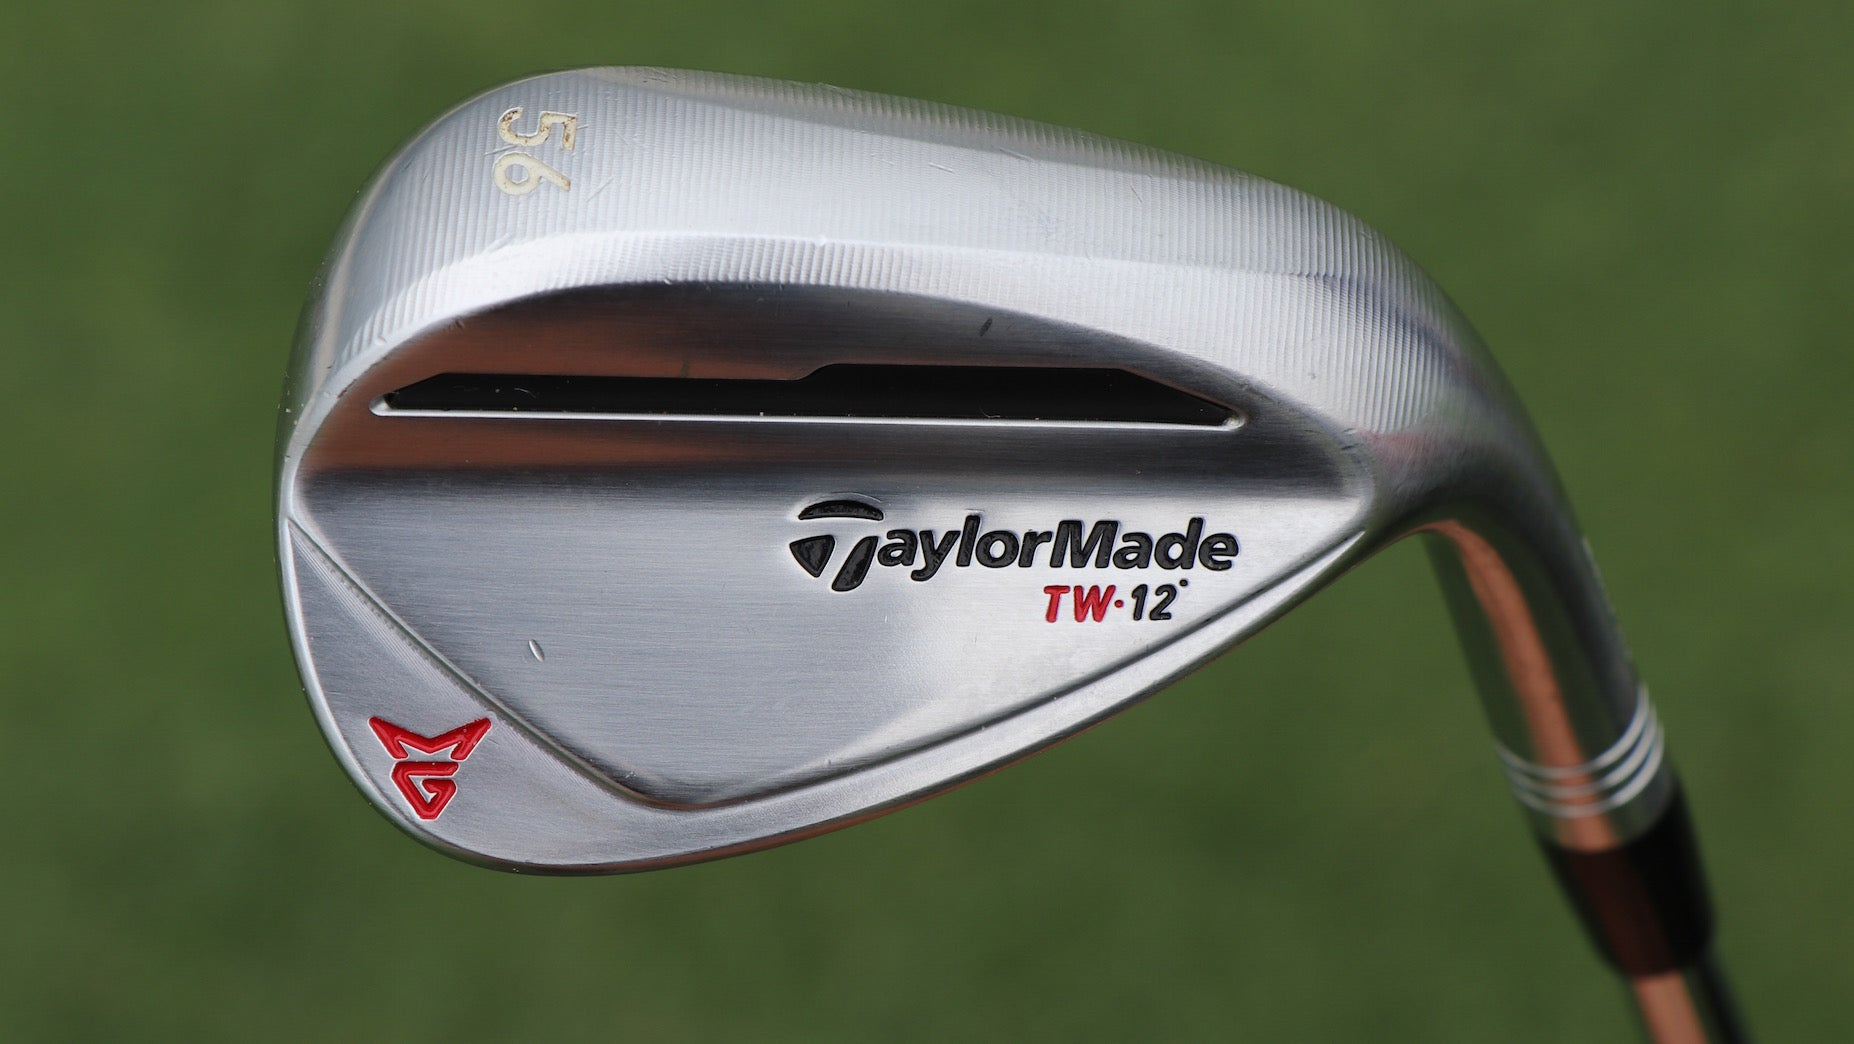 Tiger Woods says he grinds his own wedges in home workshop